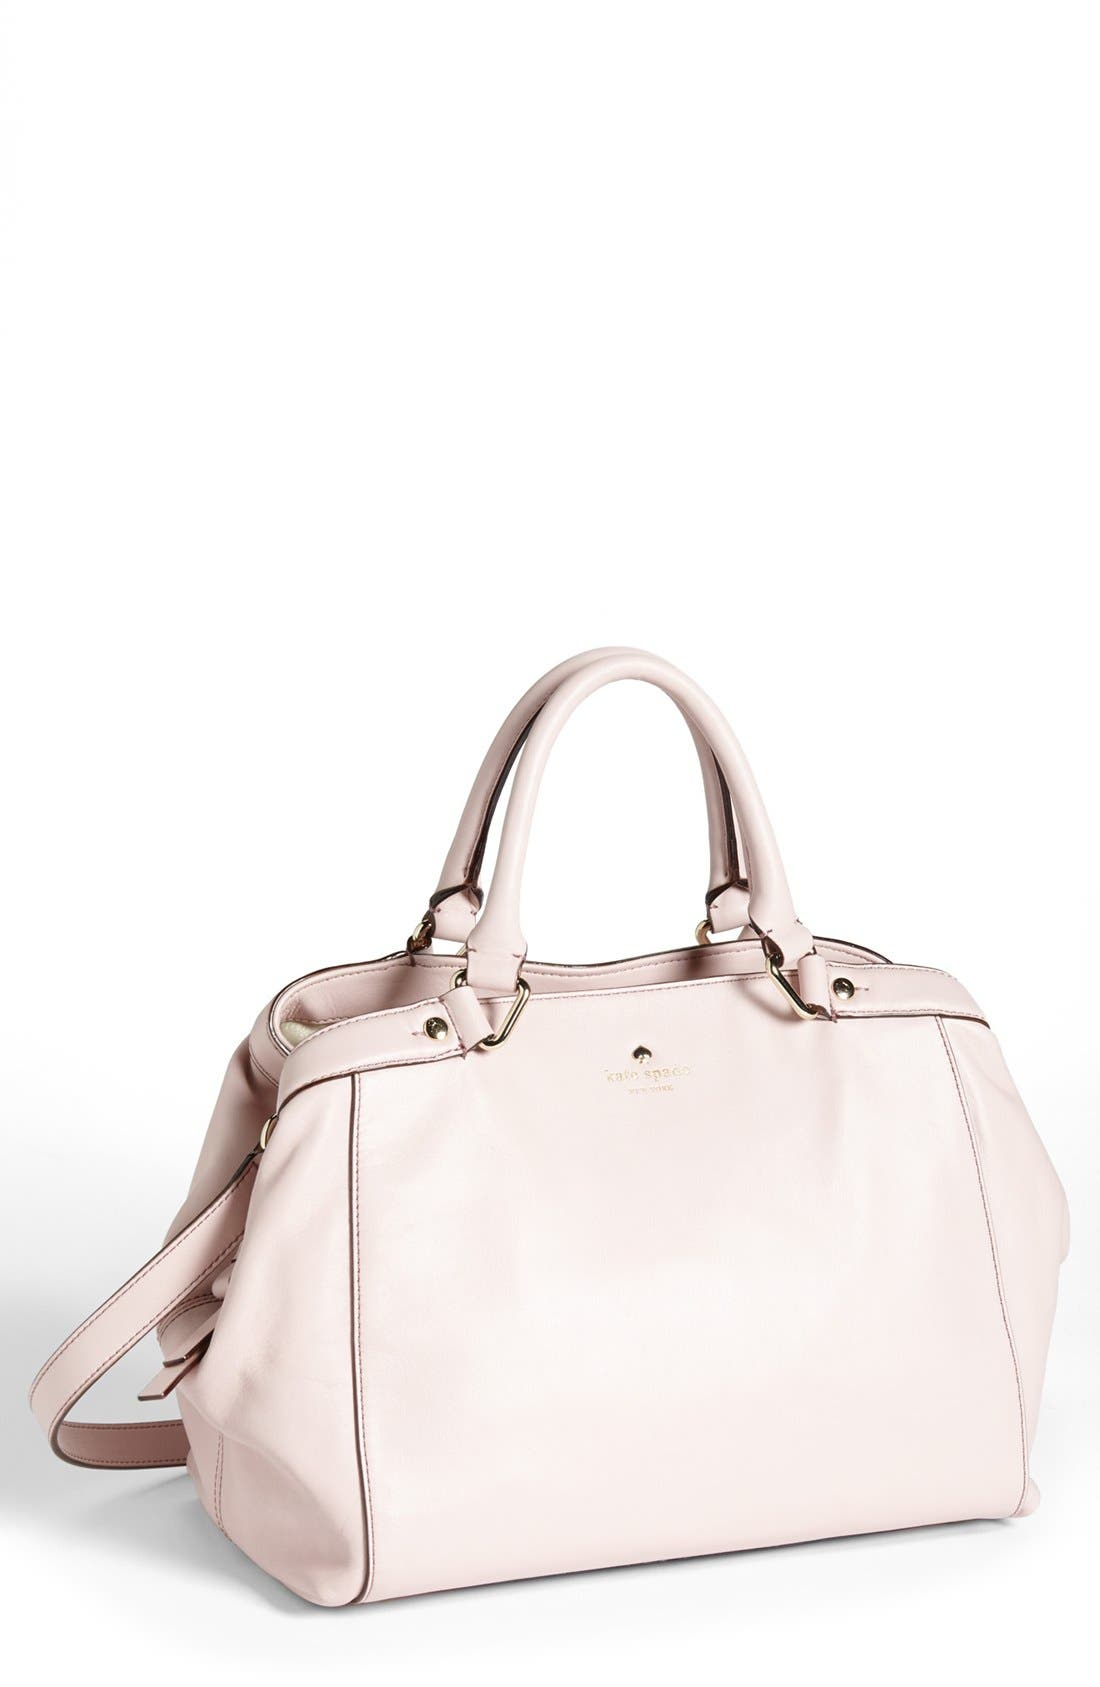 Main Image - kate spade new york 'hamilton heights - sloan' satchel